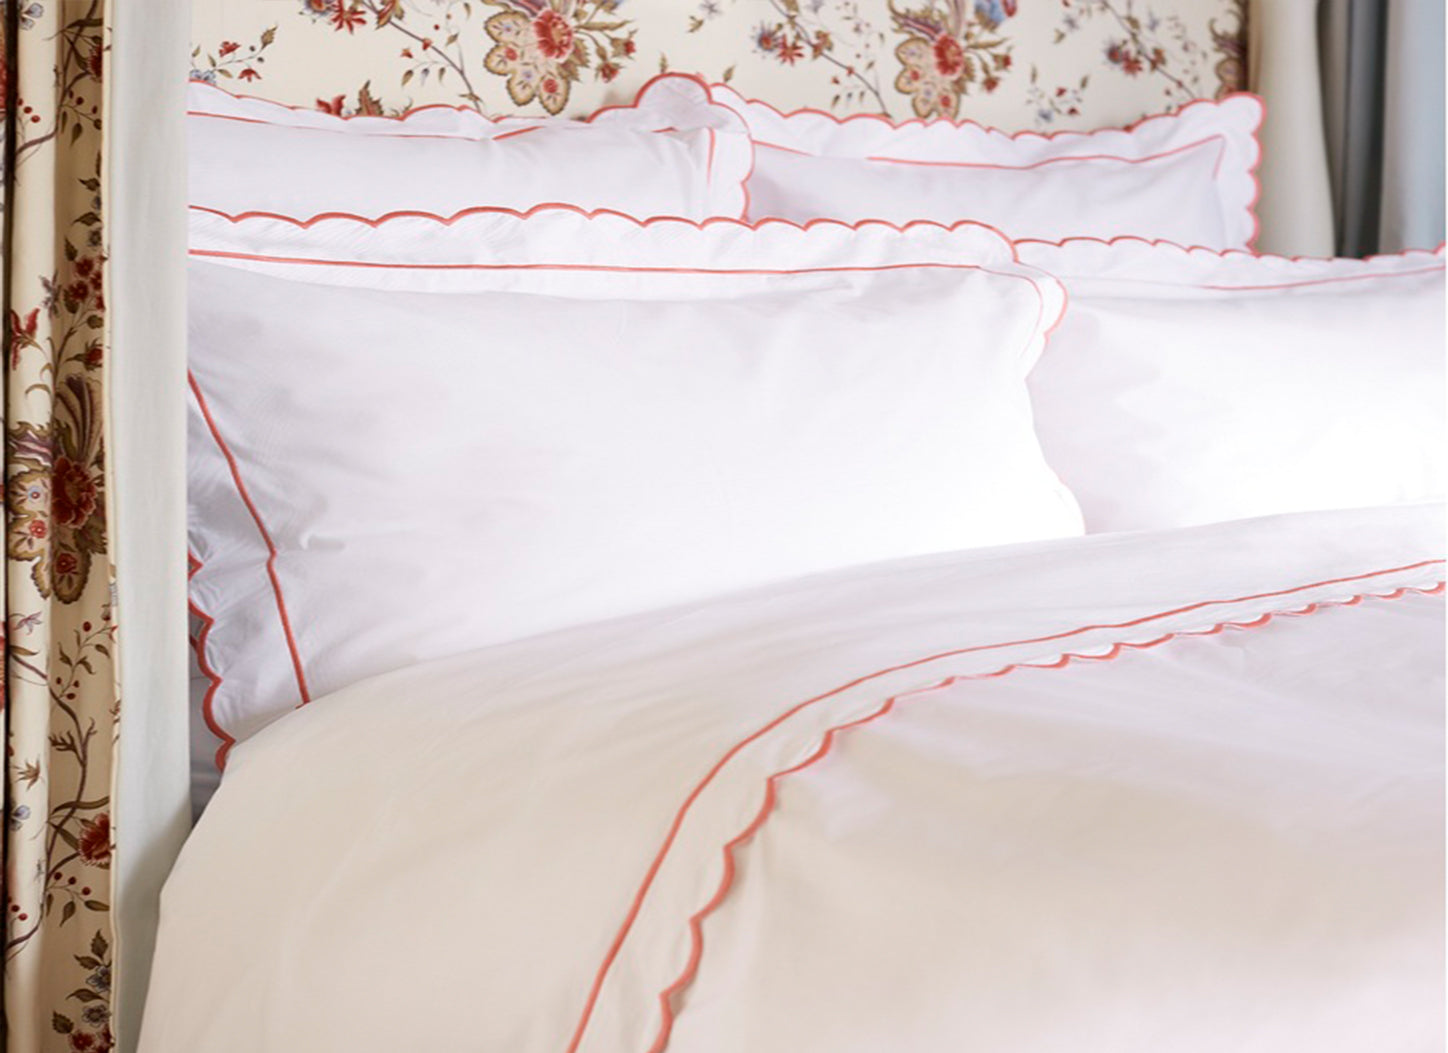 sophie conran scalloped bed linen